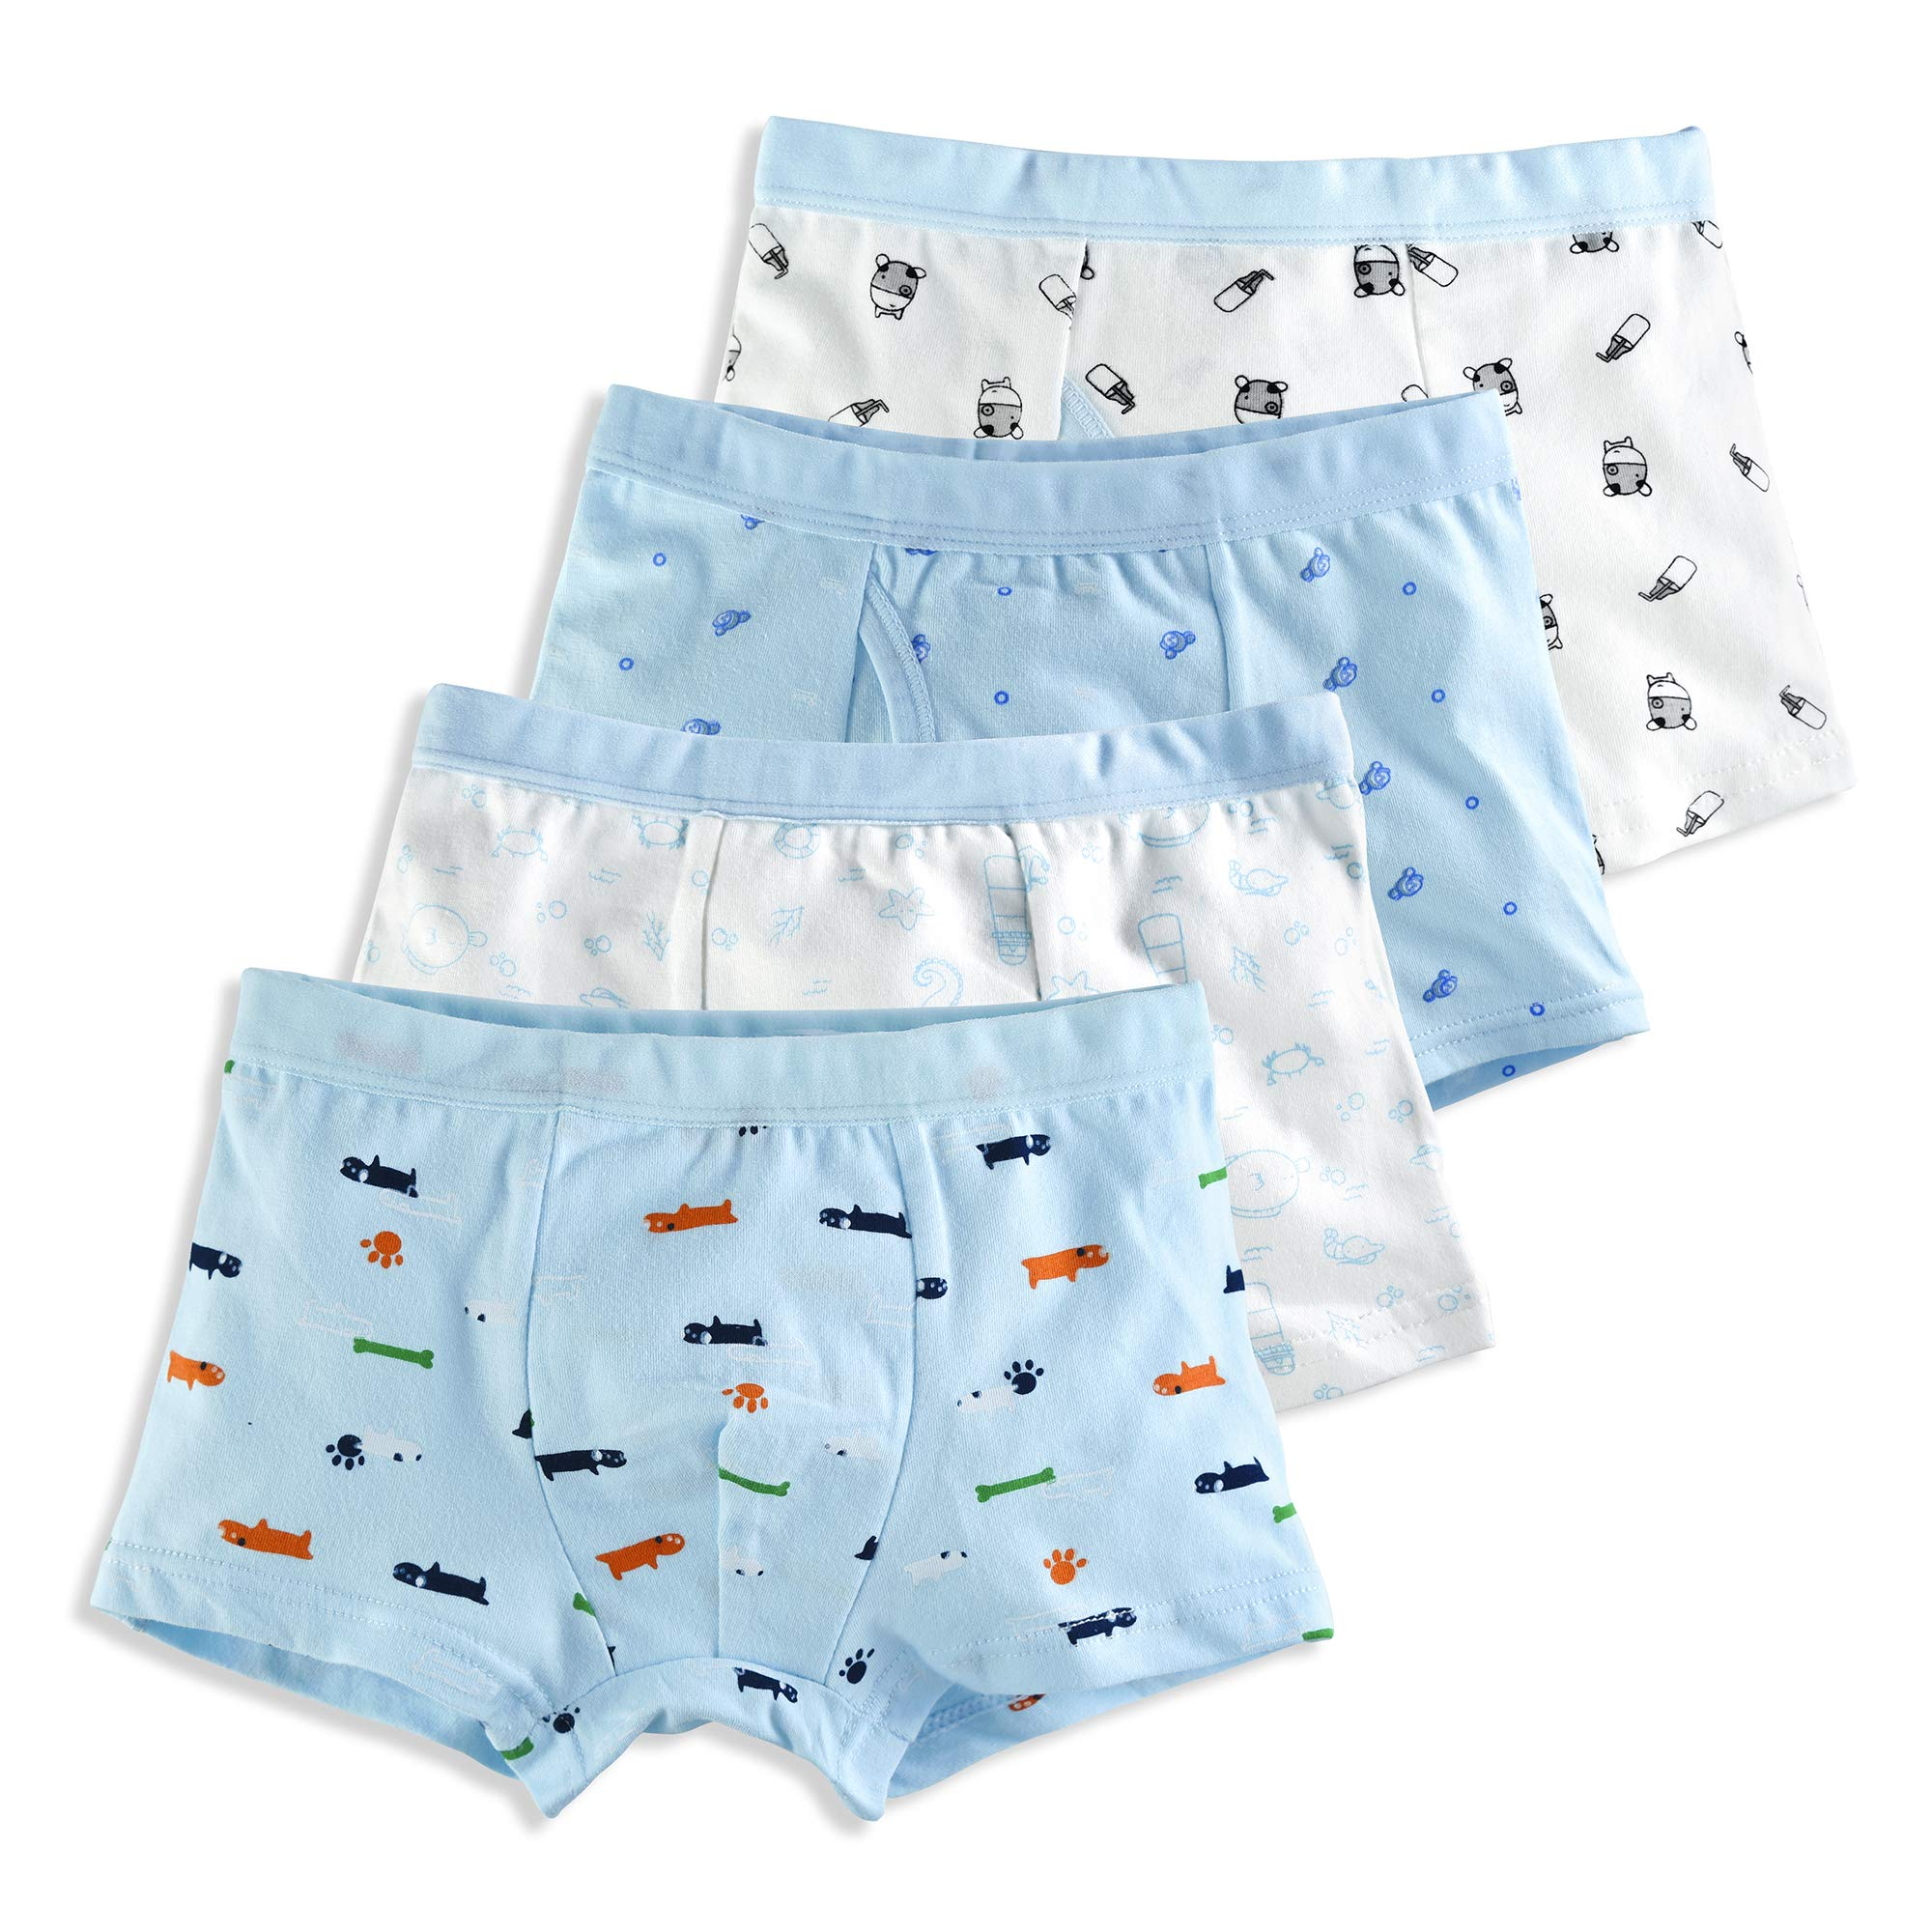 slaixiu Soft Cotton Kids Underwear Cartoon Boys Boxer Briefs 4-Pack (UW75-No.7-120)